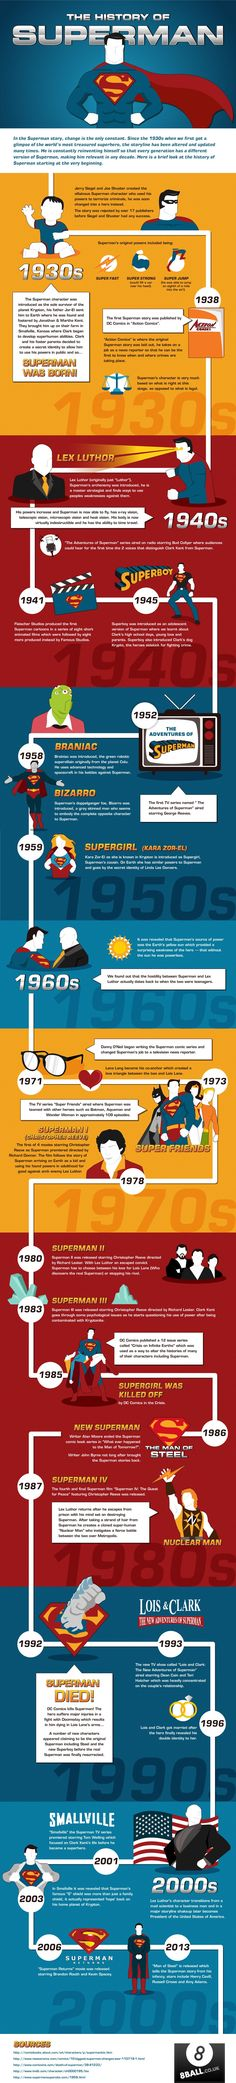 Relive the History of Superman